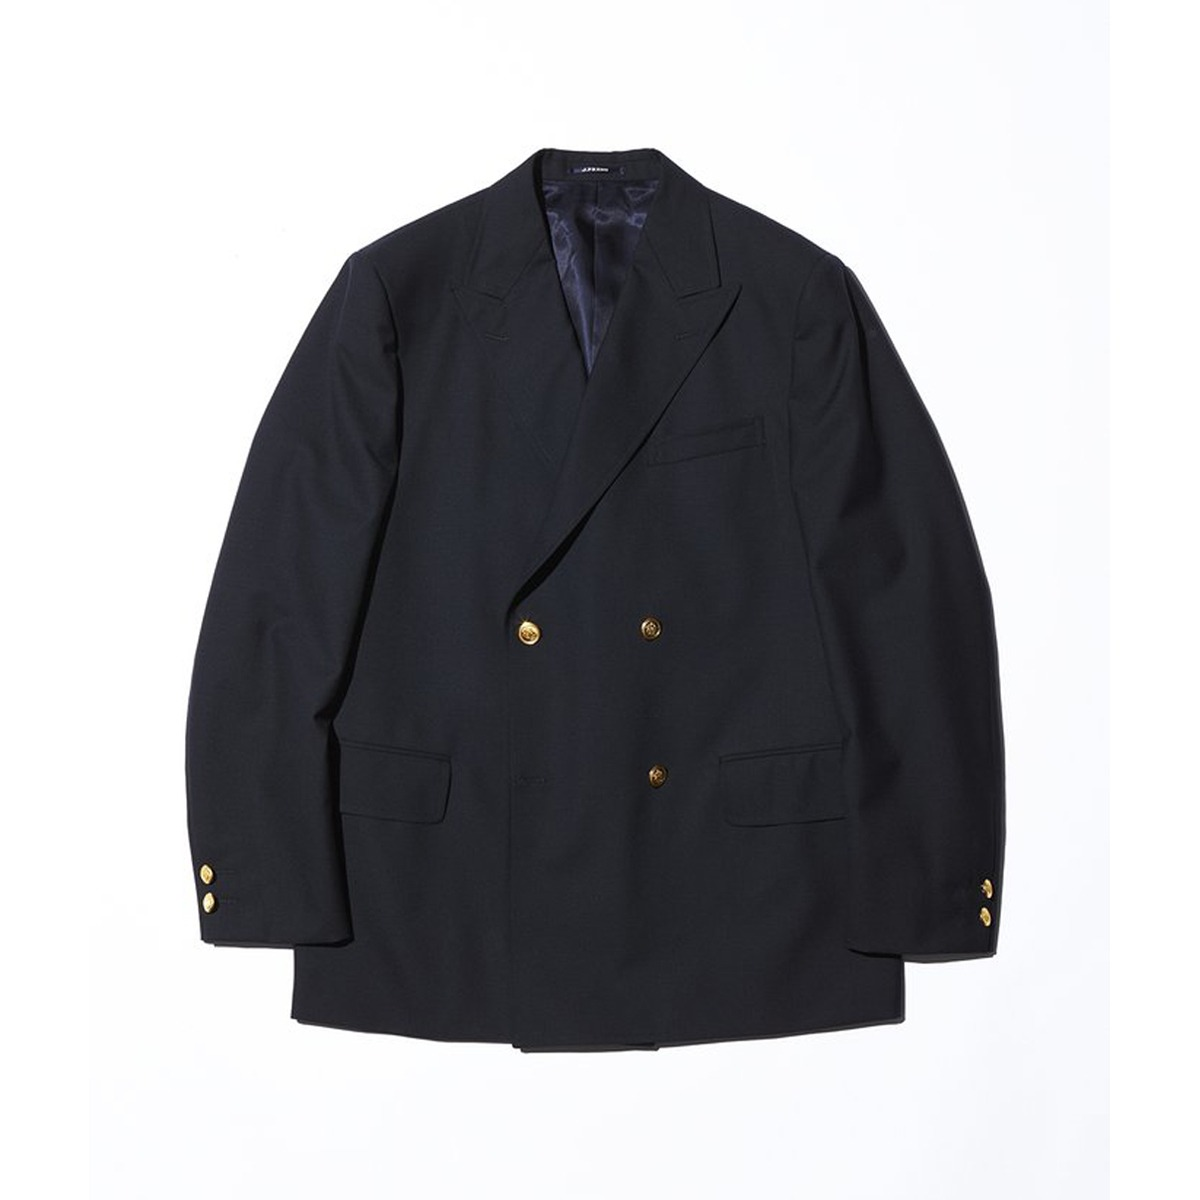 [J PRESS] PEPPIN MERINO TROPICAL 4B AUTHENTIC BLAZER 'NAVY'